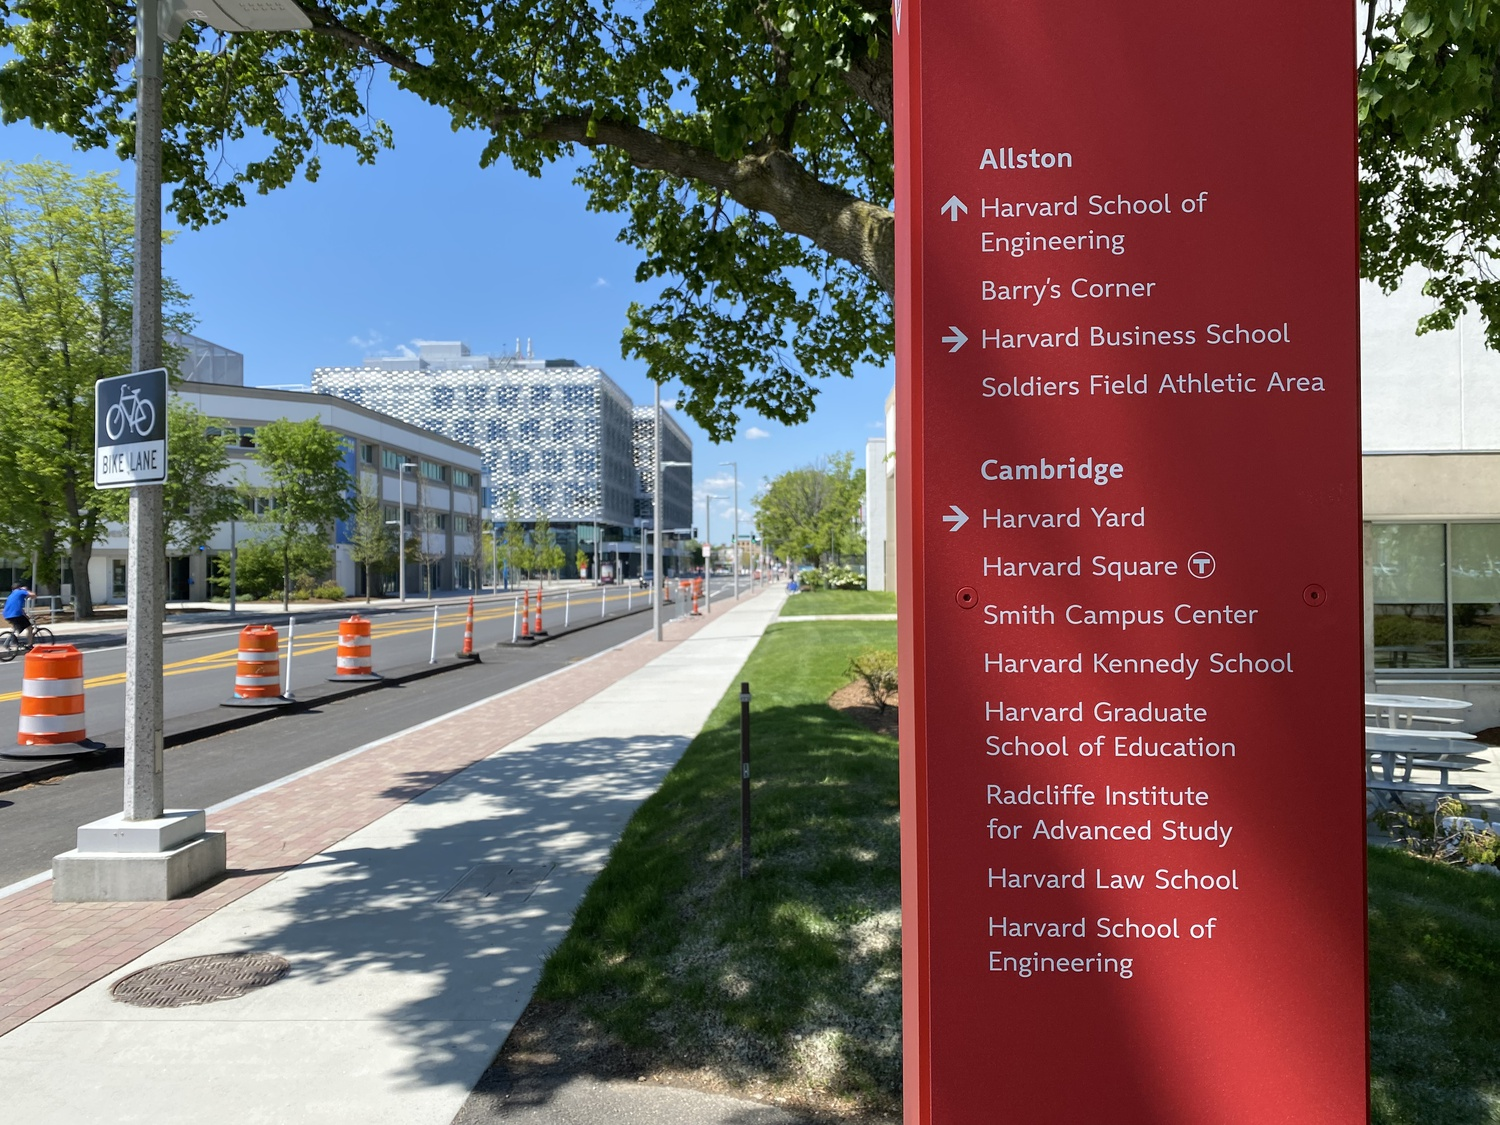 As the Boston Planning and Development Agency proceeds with its review of Harvard's proposed Enterprise Research Campus, developers, University representatives, and Allston residents met virtually Tuesday to discuss plans to improve local transportation.